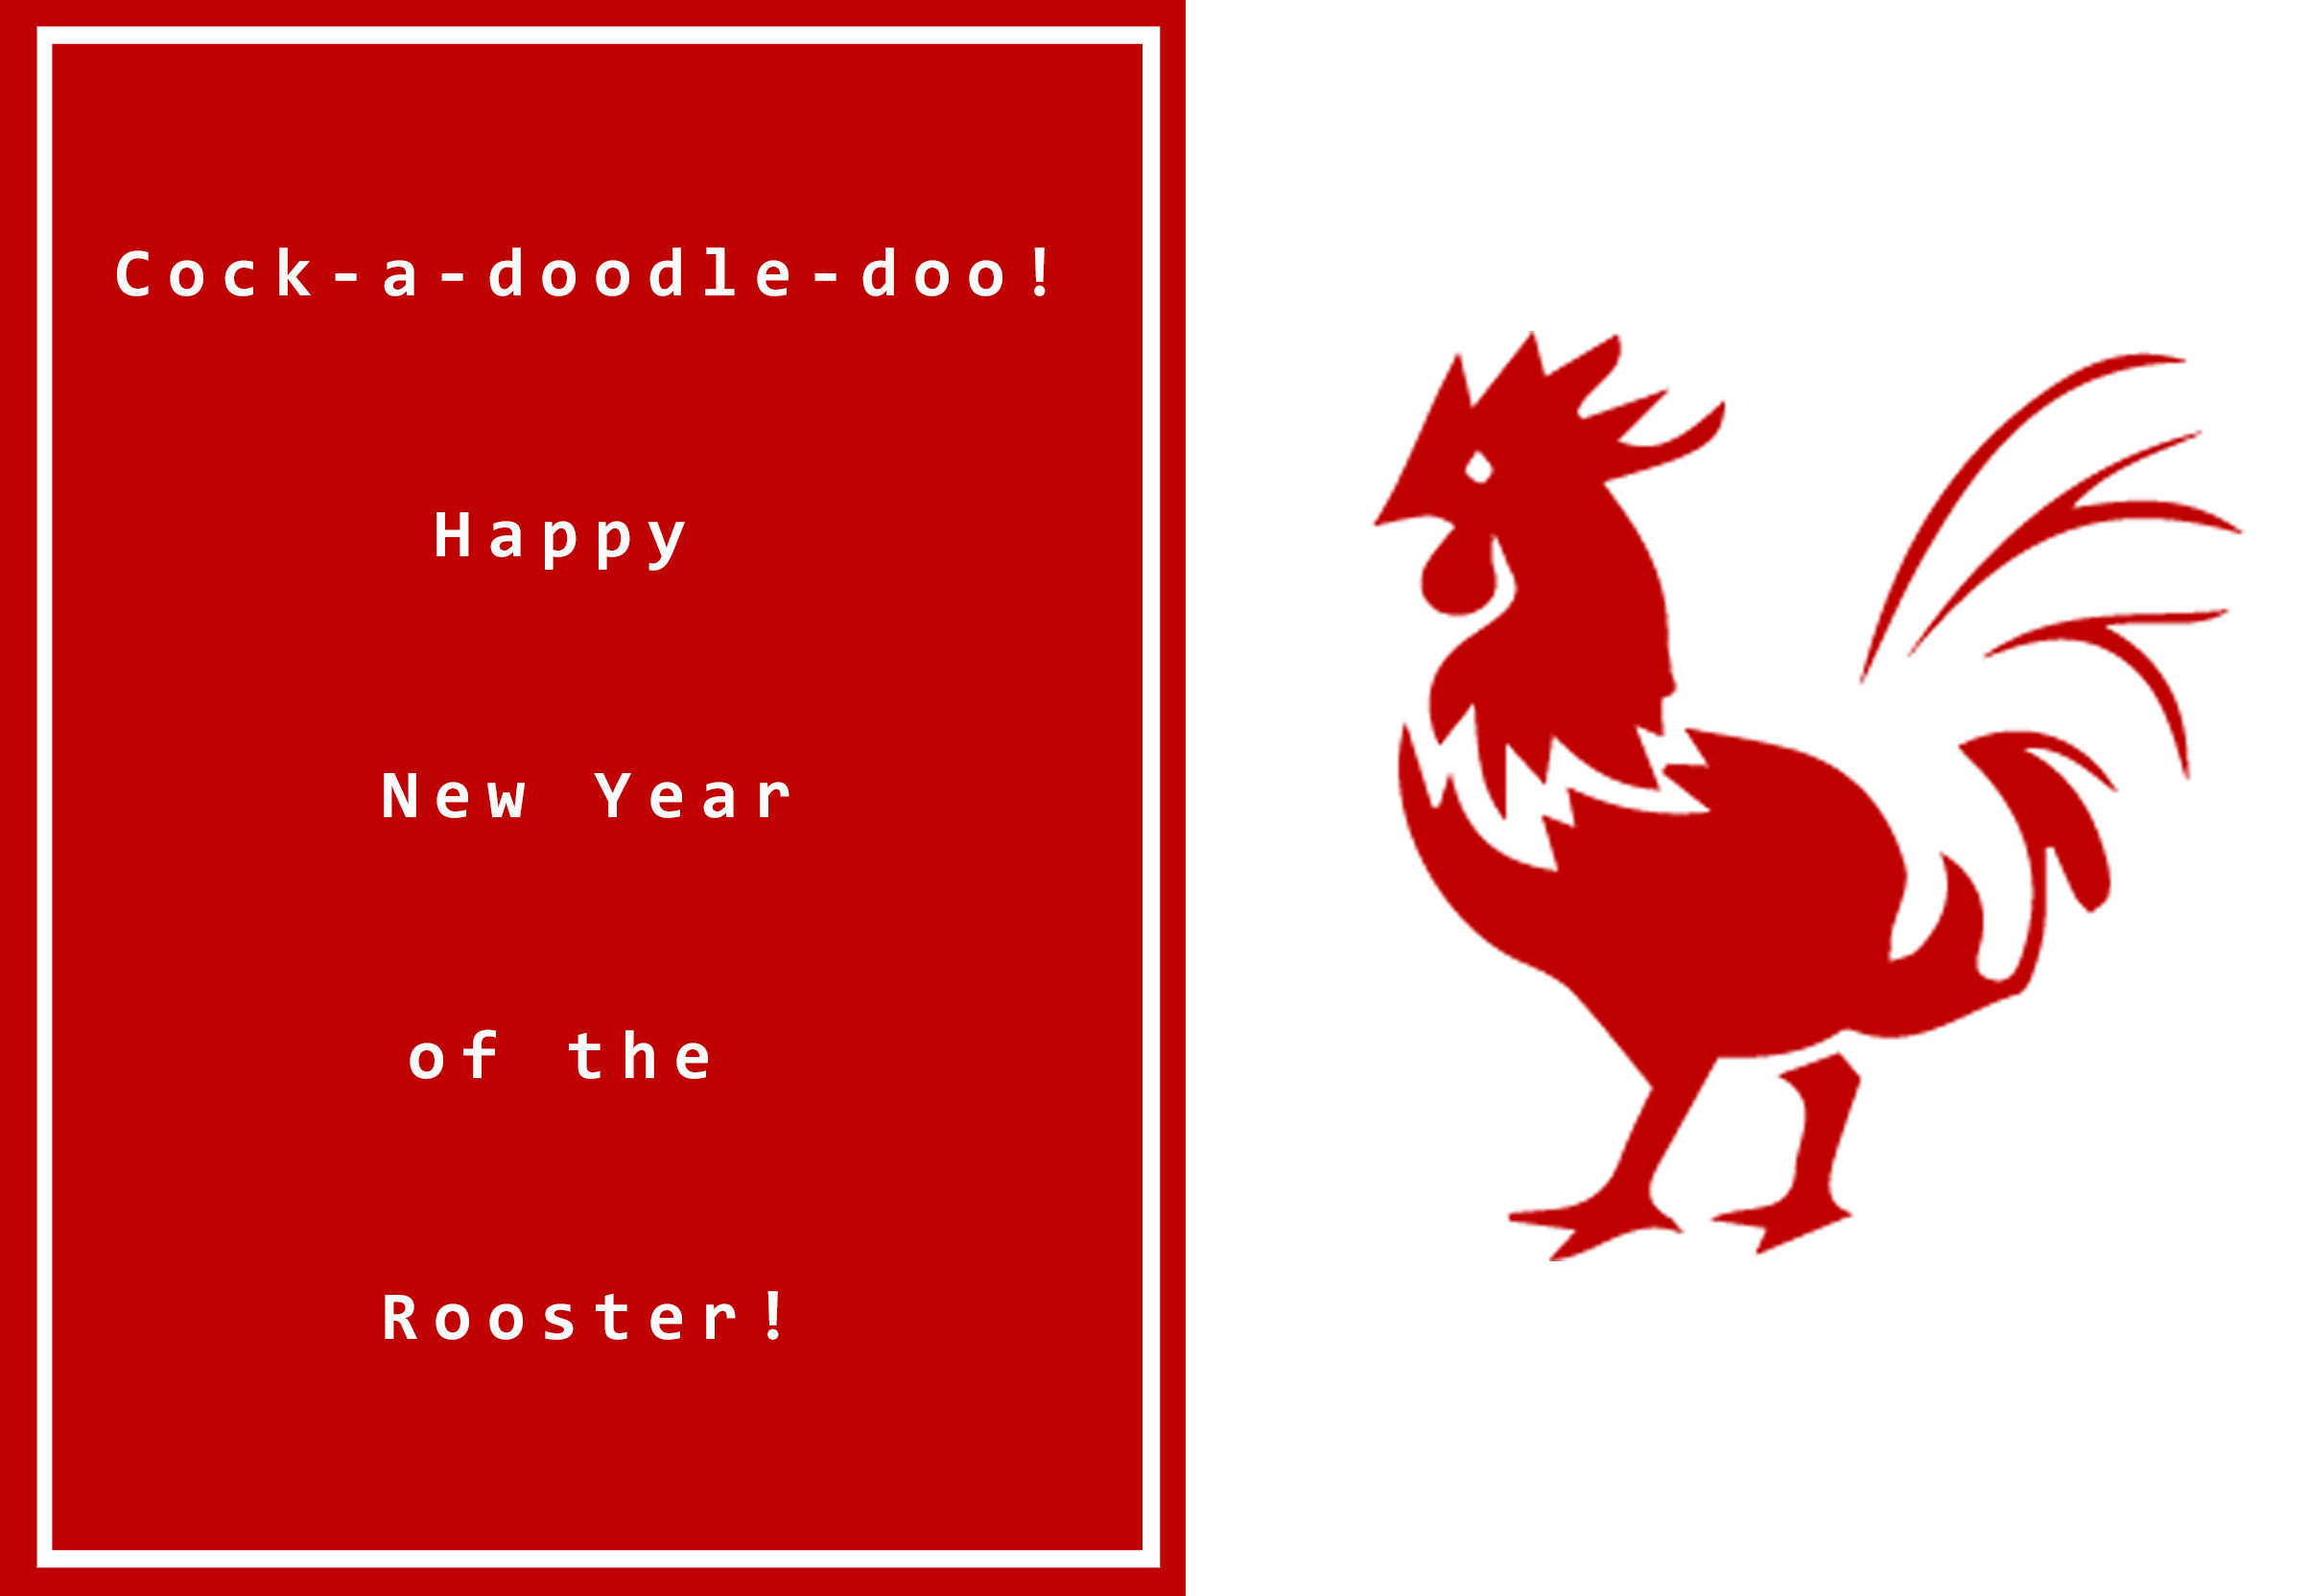 happy-new-year-rooster